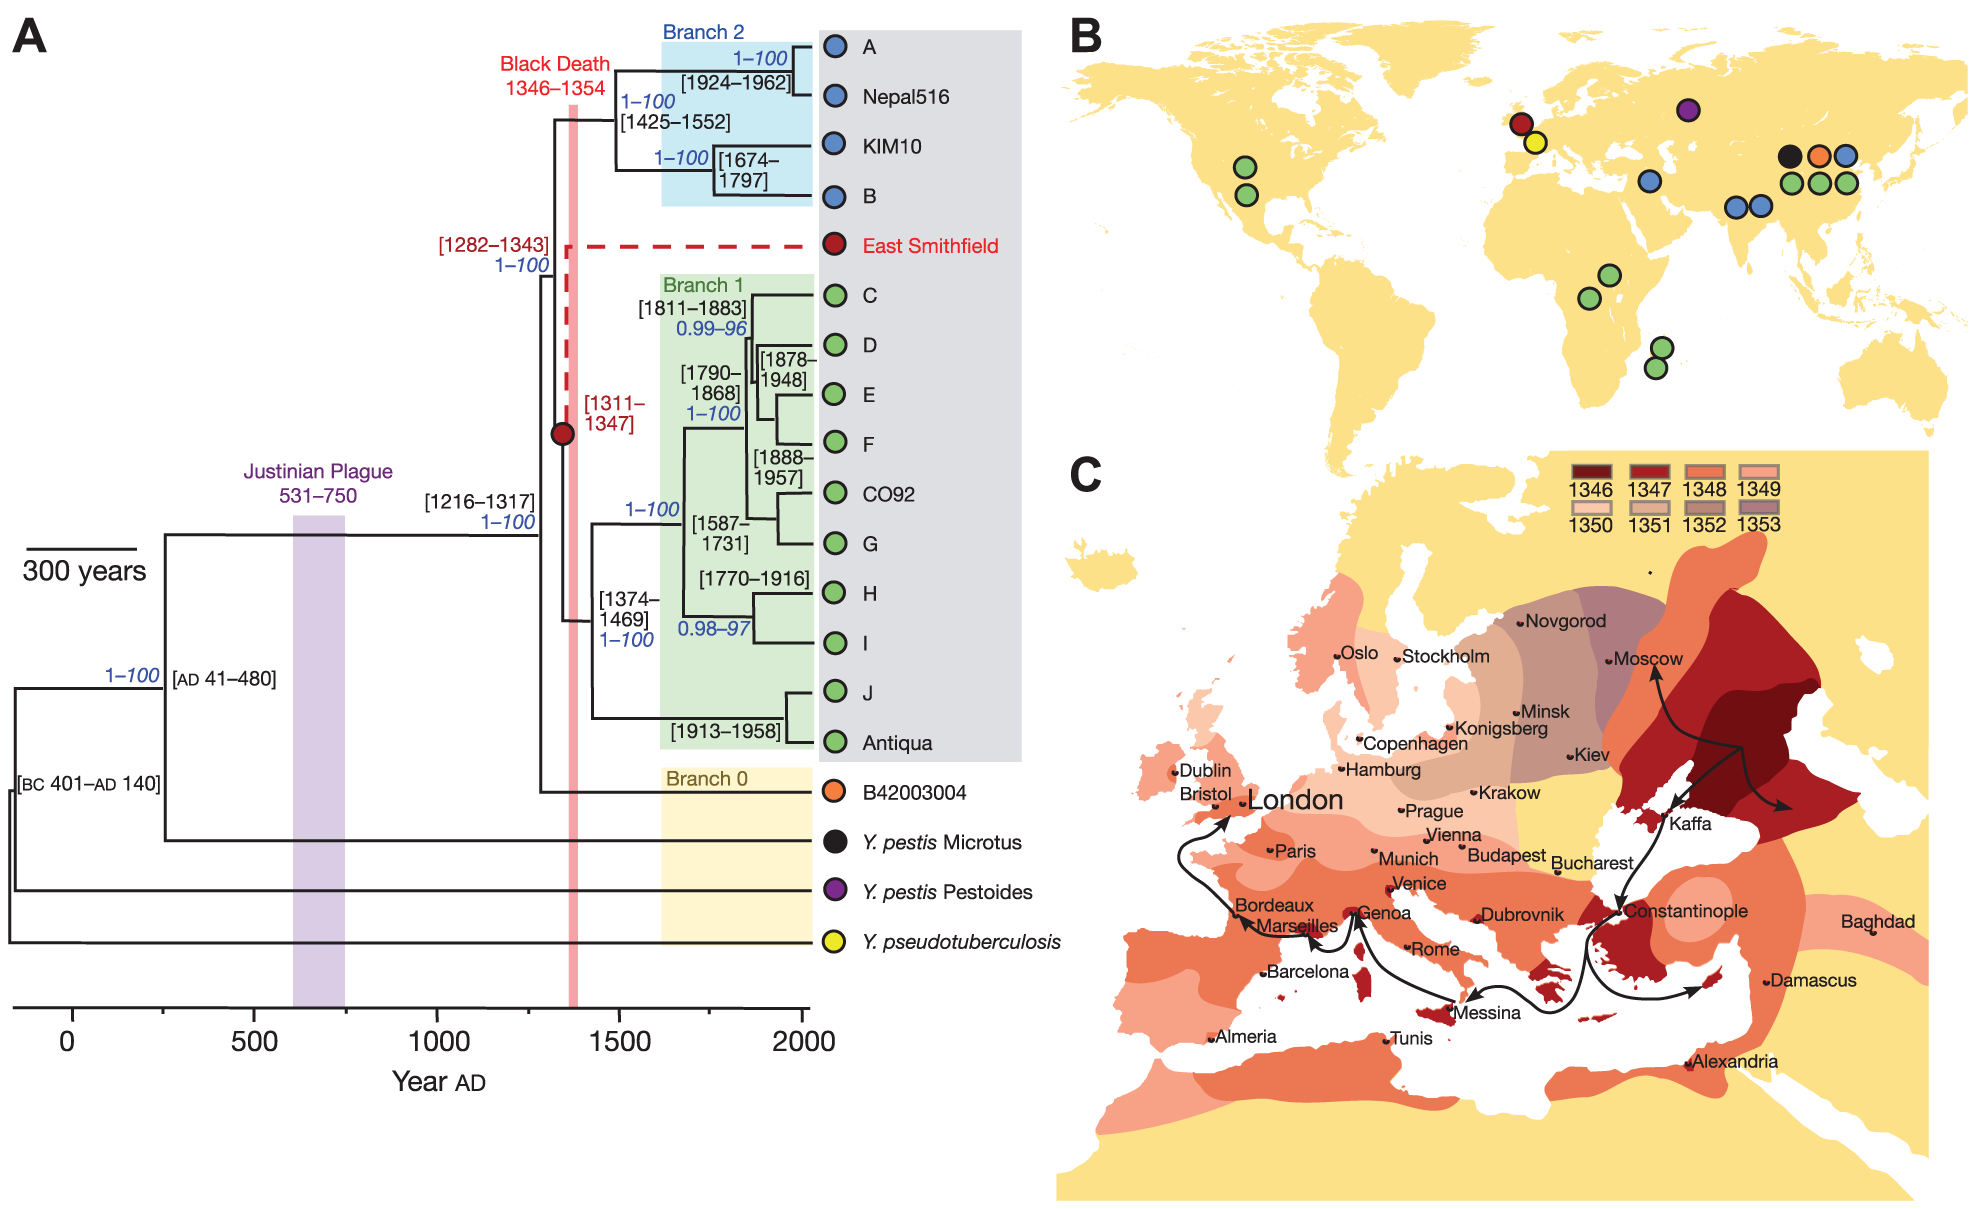 Patterns of historical transmission reconstructed by whole genome sequencing.